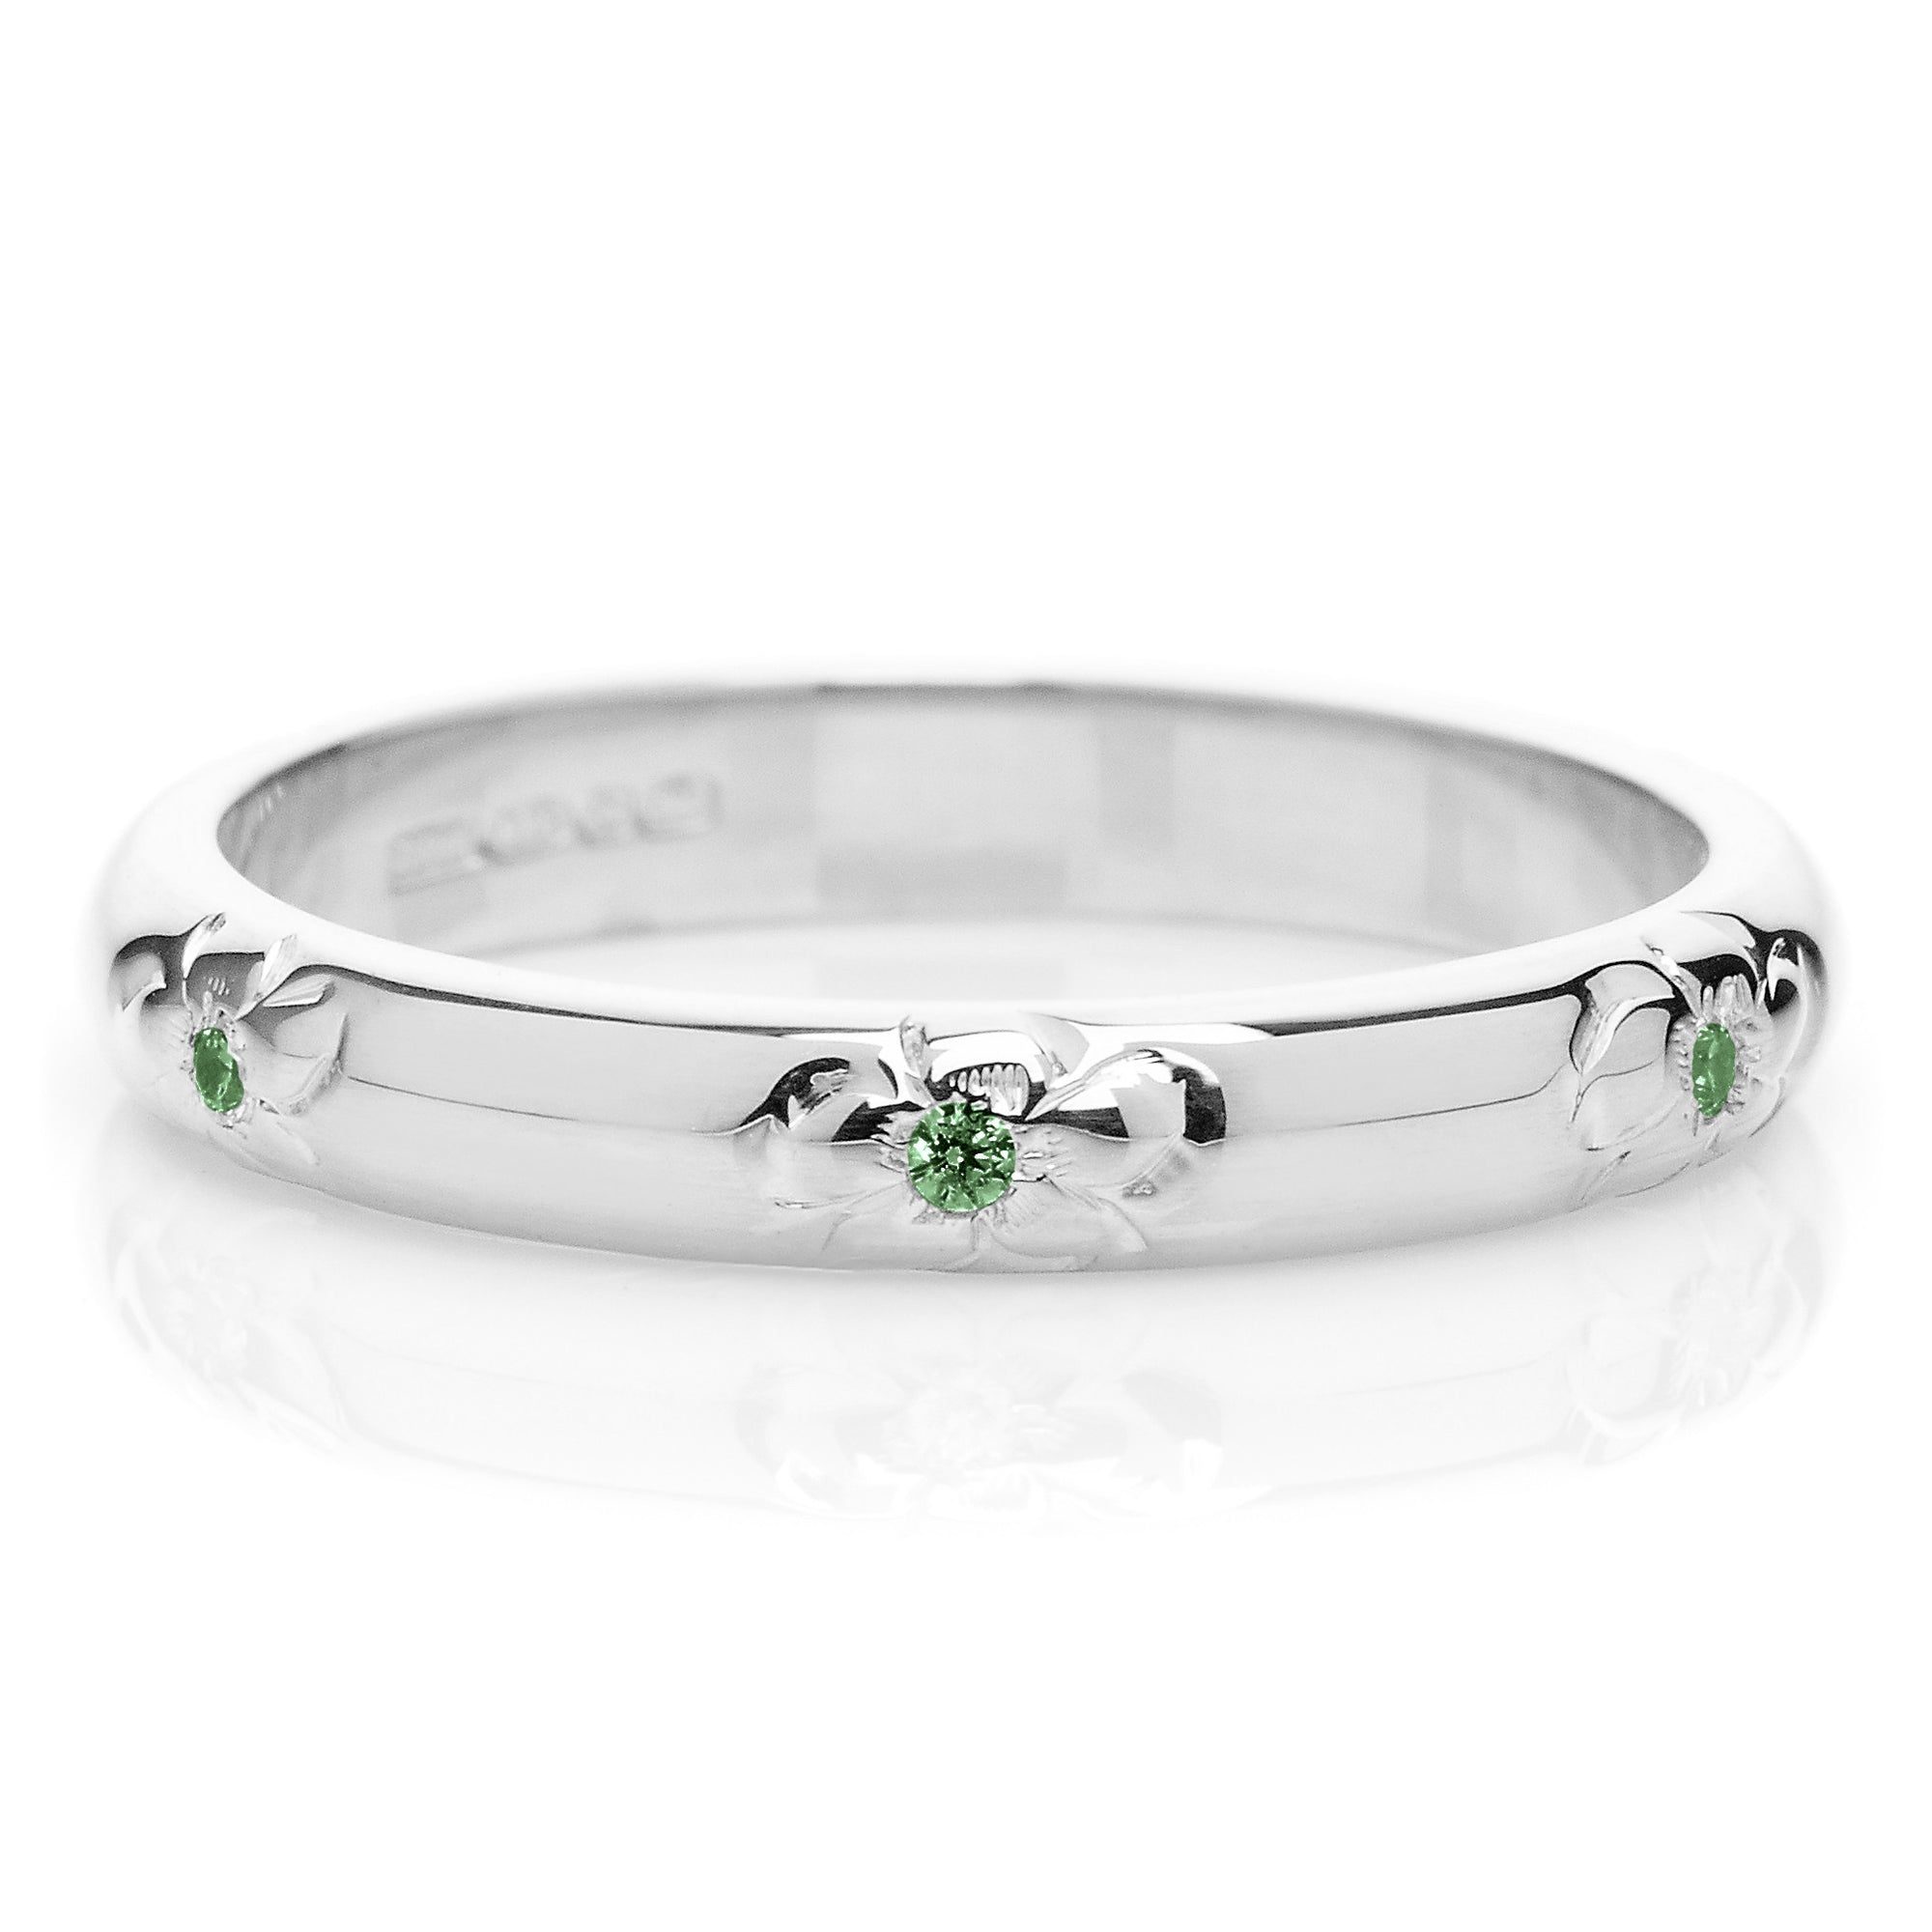 Emerald Engagement Rings and Their Care